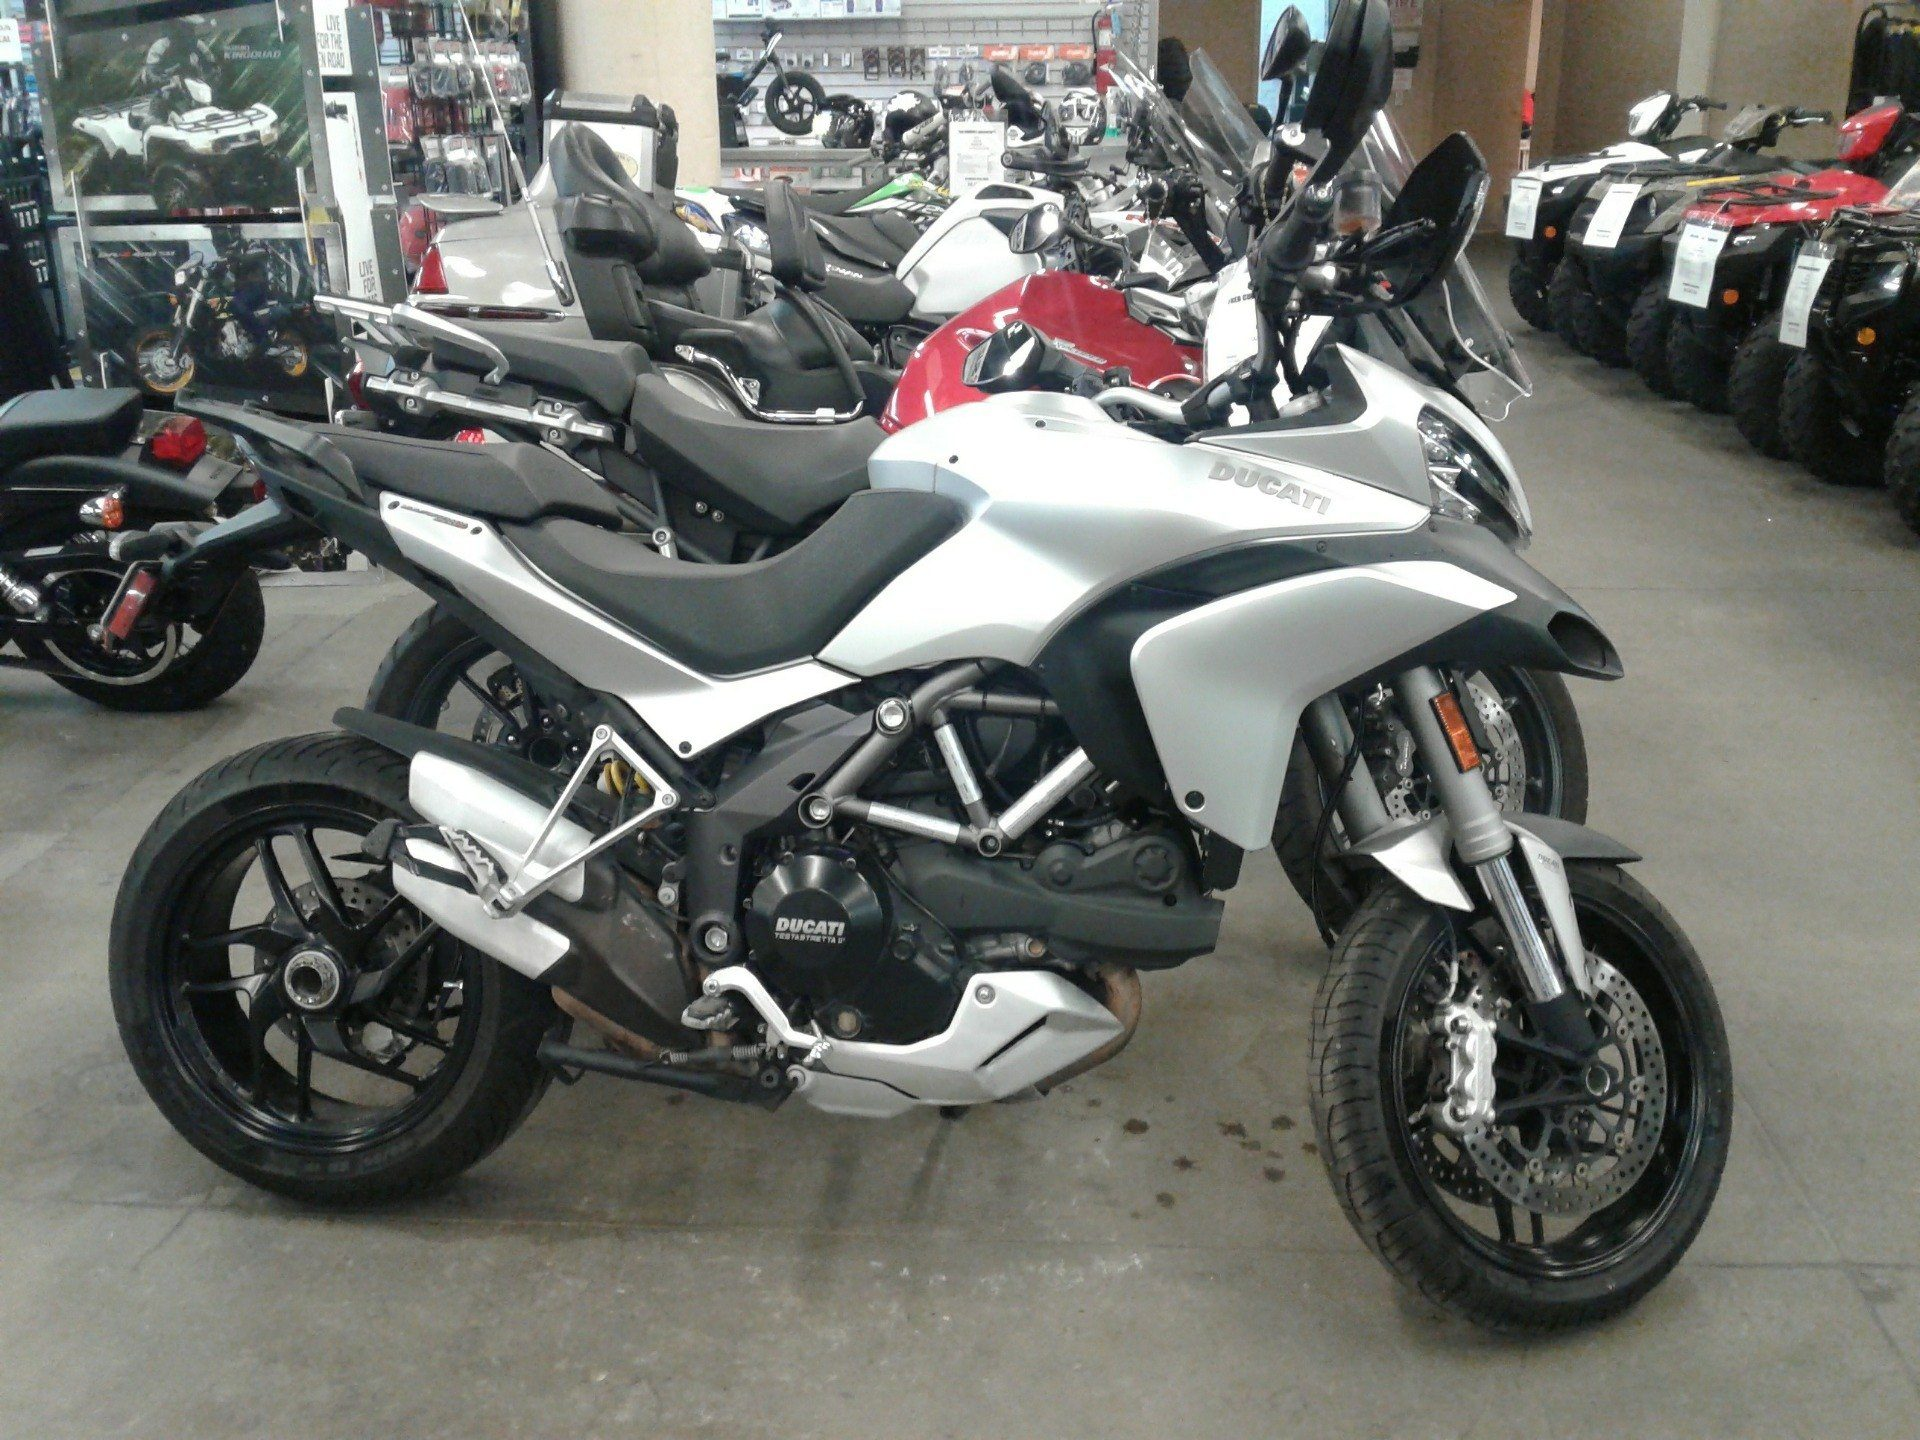 2014 Ducati Multistrada 1200 S Touring in Bakersfield, California - Photo 1